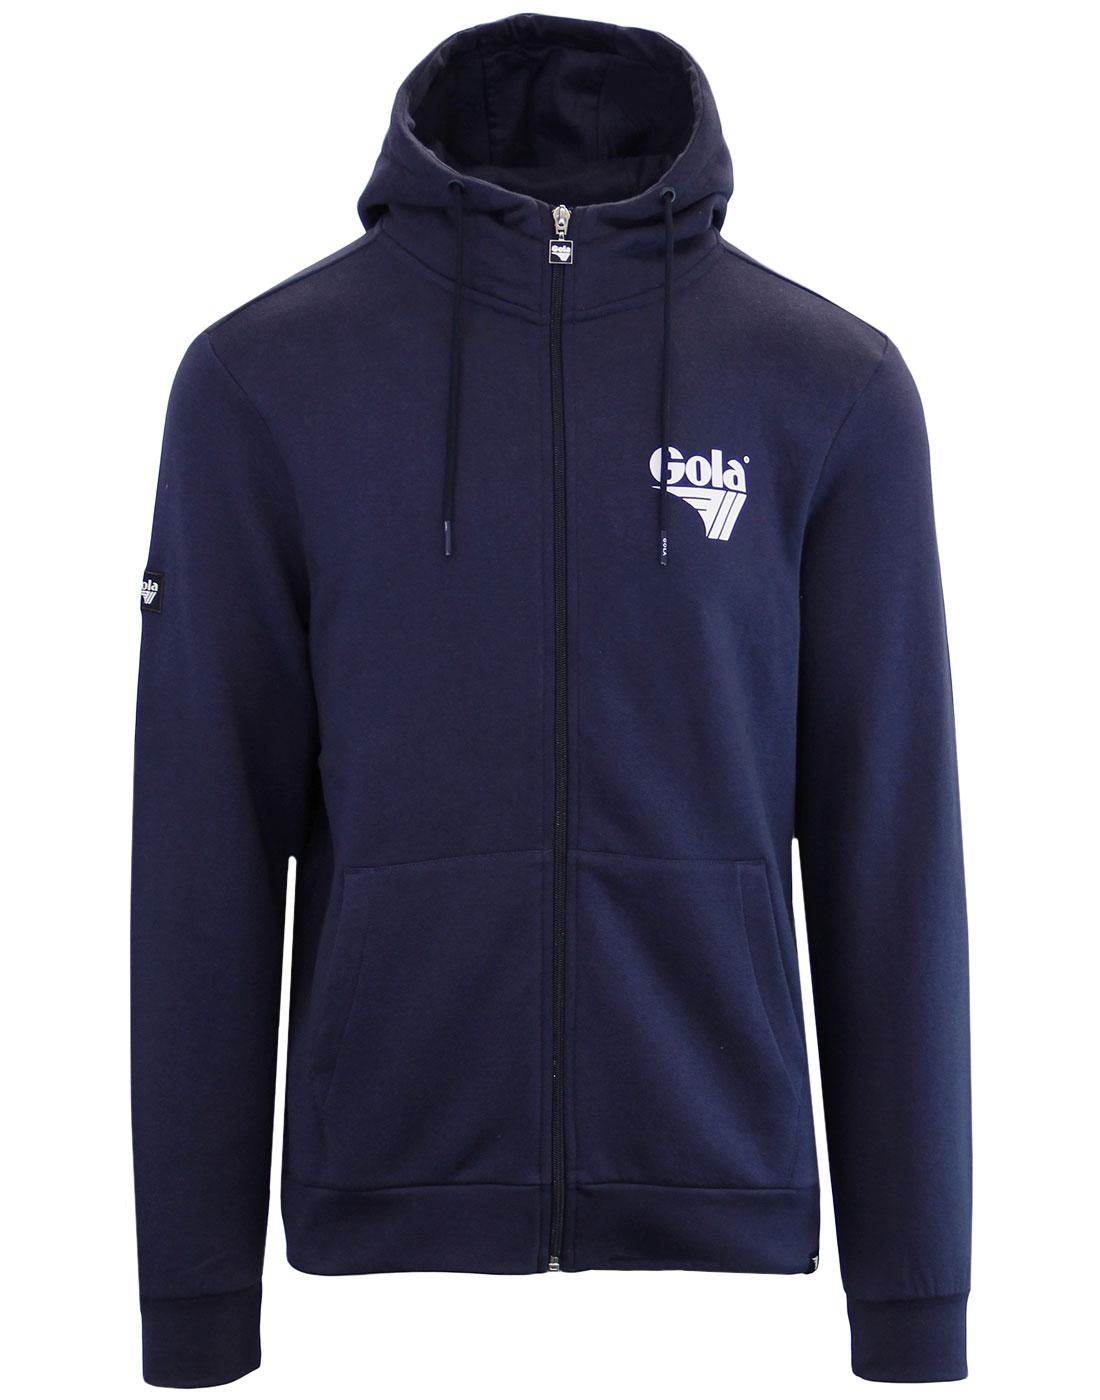 Hunt GOLA CLASSICS Retro 80's Zip Up Hoodie (N)